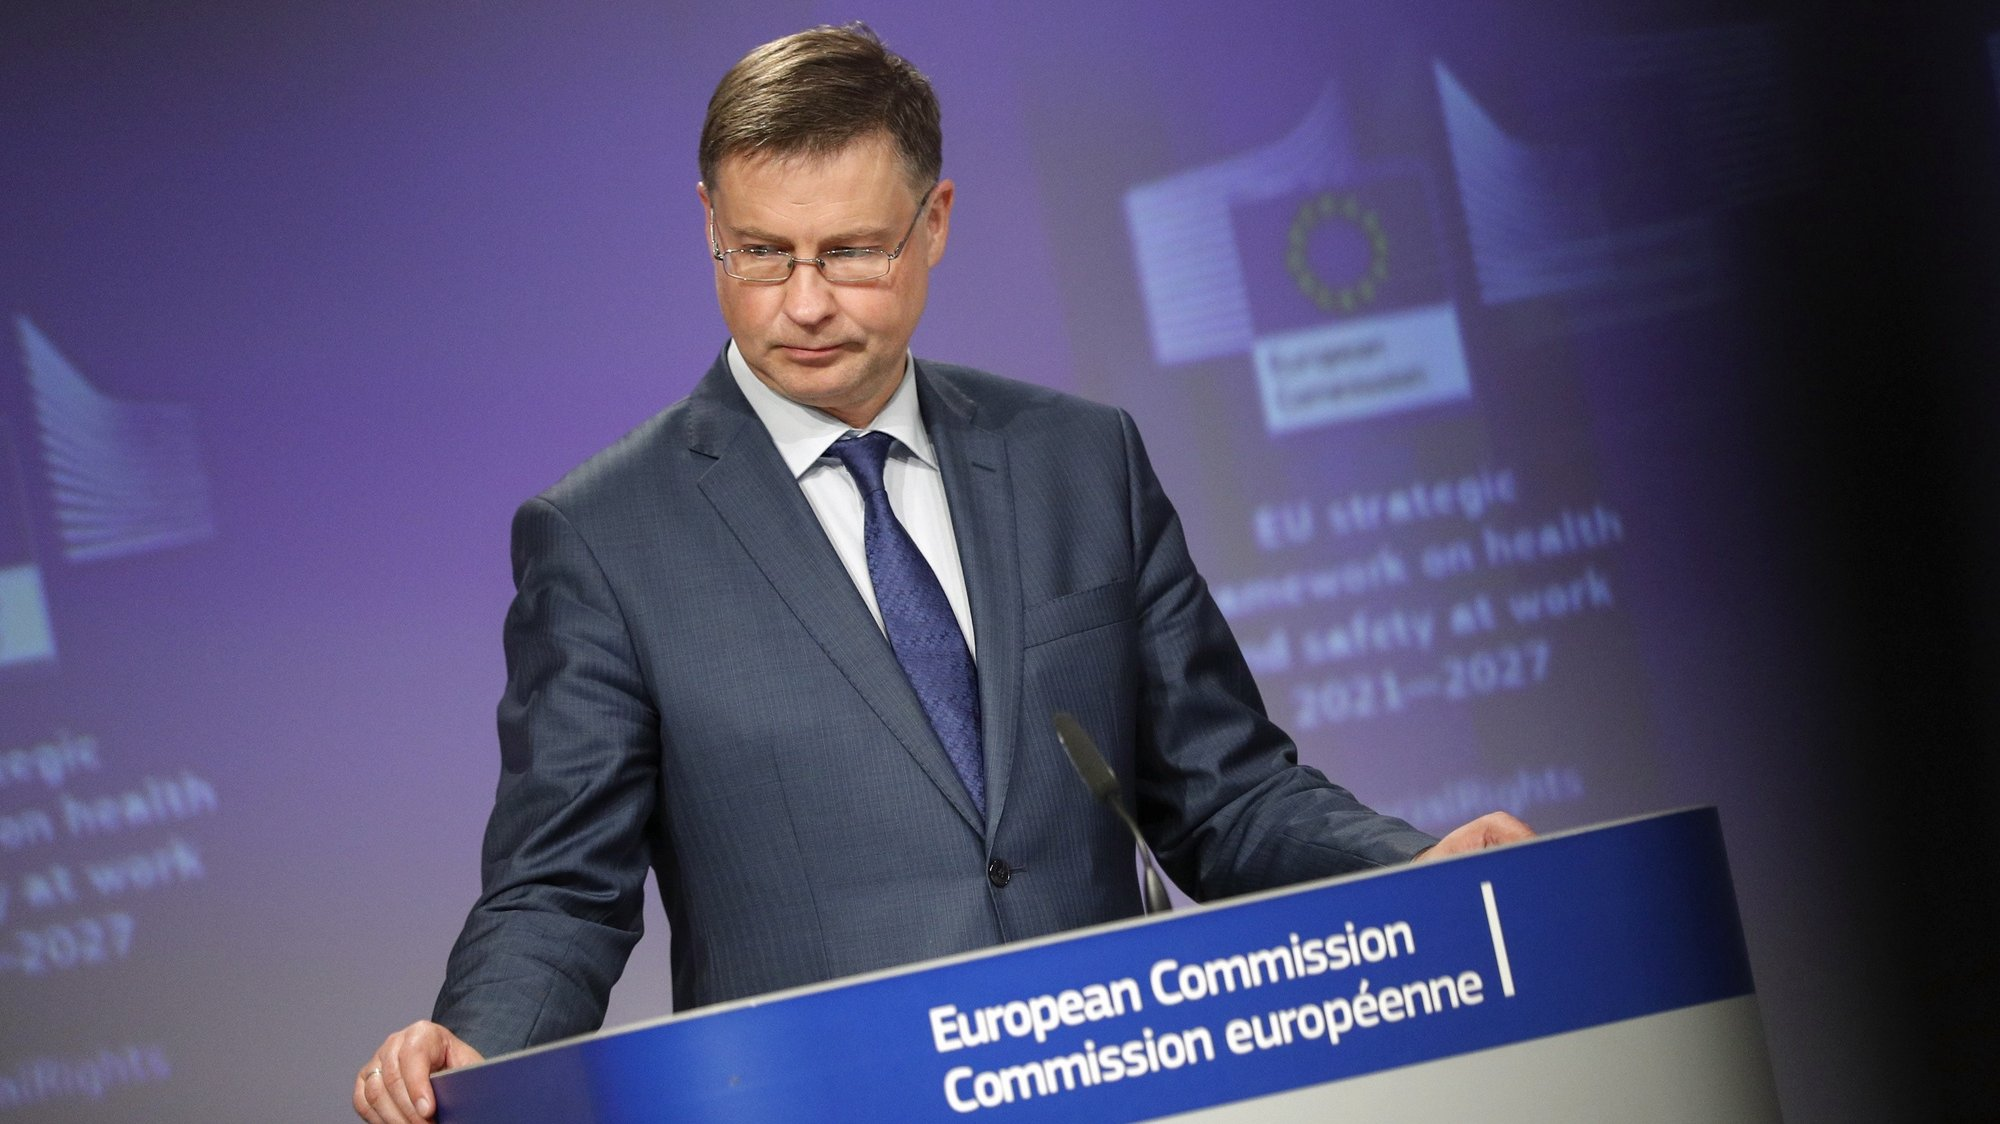 epa09307632 European Commission vice-president Valdis Dombrovskis gives a news conference with Commissioner Nicolas Schmit on communication on a new occupational safety and health strategy framework in Brussels, Belgium, 28 June 2021.  EPA/JOHANNA GERON / POOL